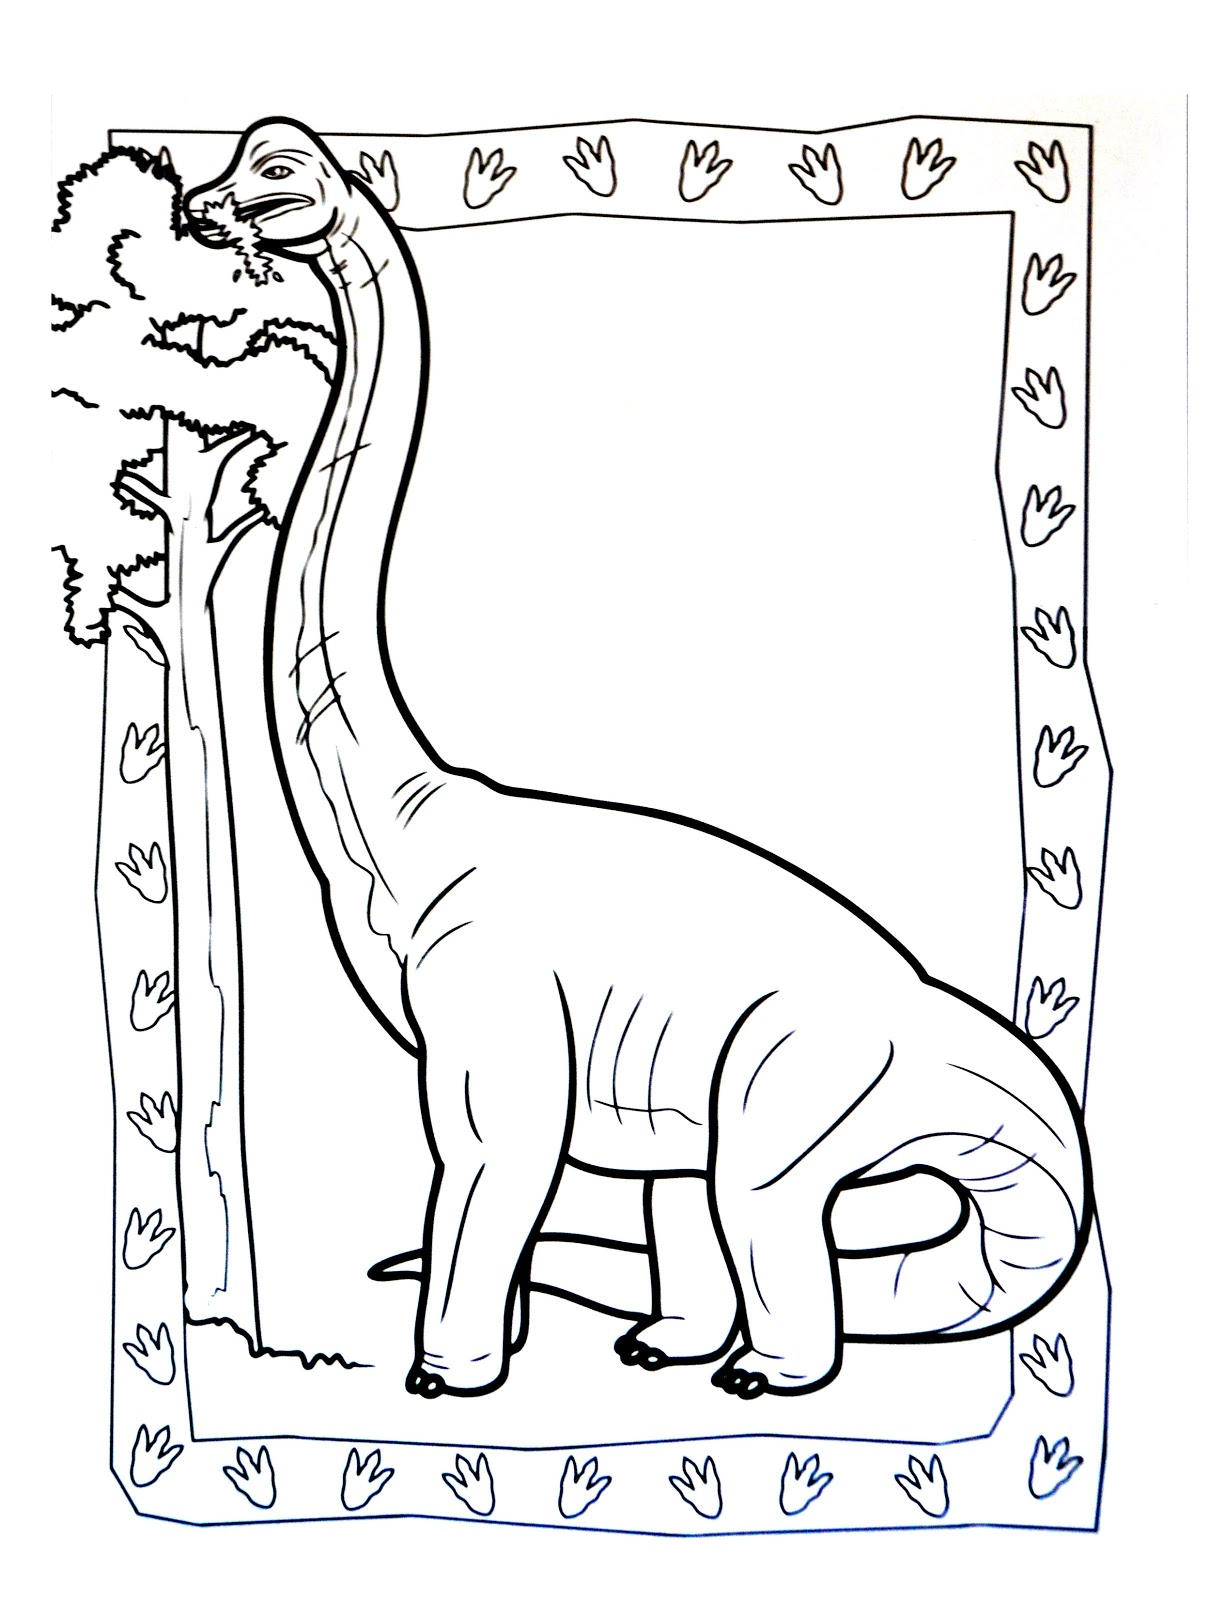 Dinosaurs coloring pages 36